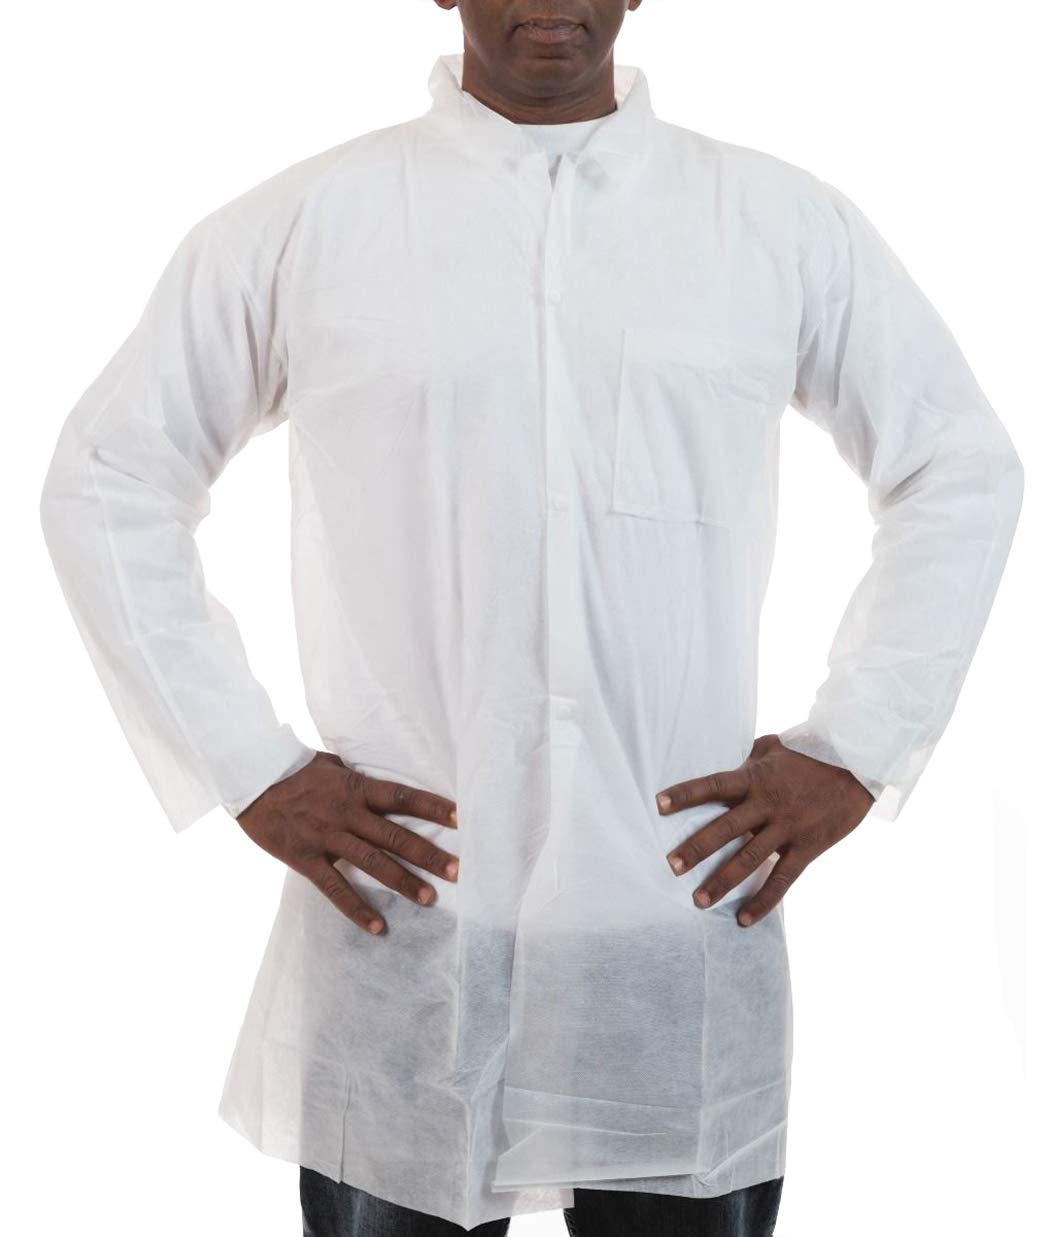 Polypropylene Lab Coat (White) with One Chest Pocket and Open Wrist, Labs, Dental, Medical (3XL, Case of 50)